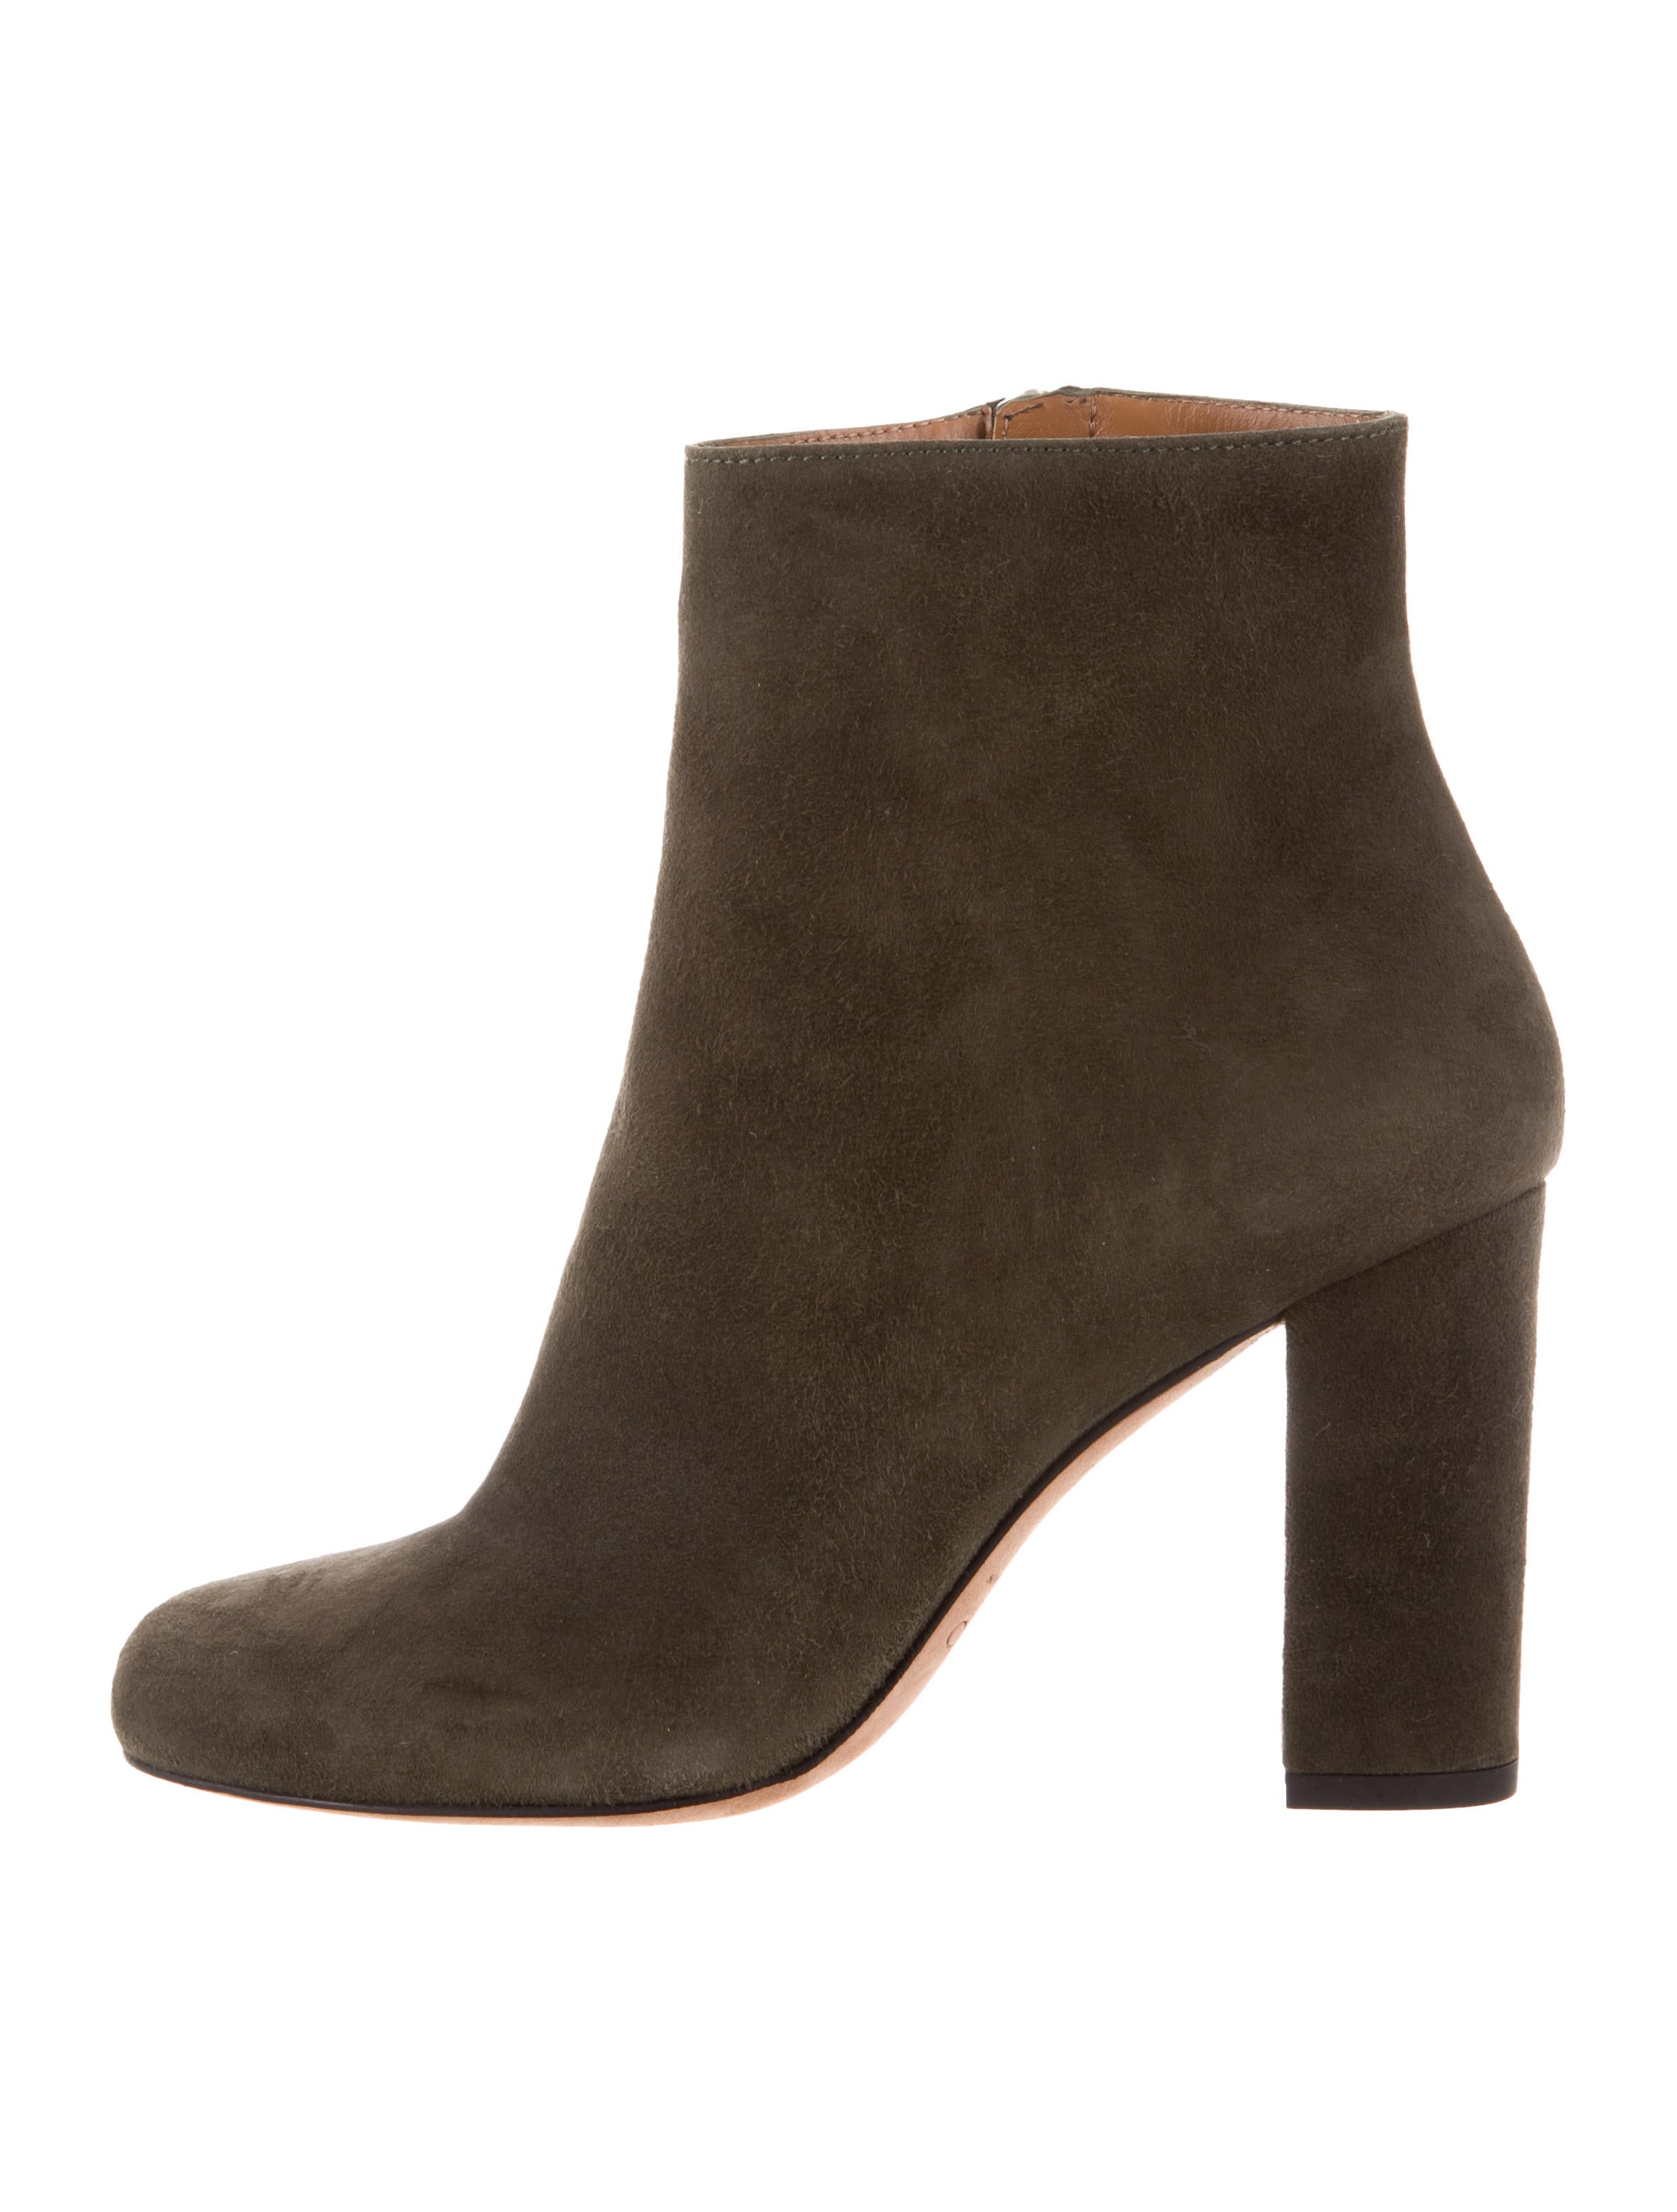 Iro Suede Ankle Boots w/ Tags sale find great bWyCIjdk